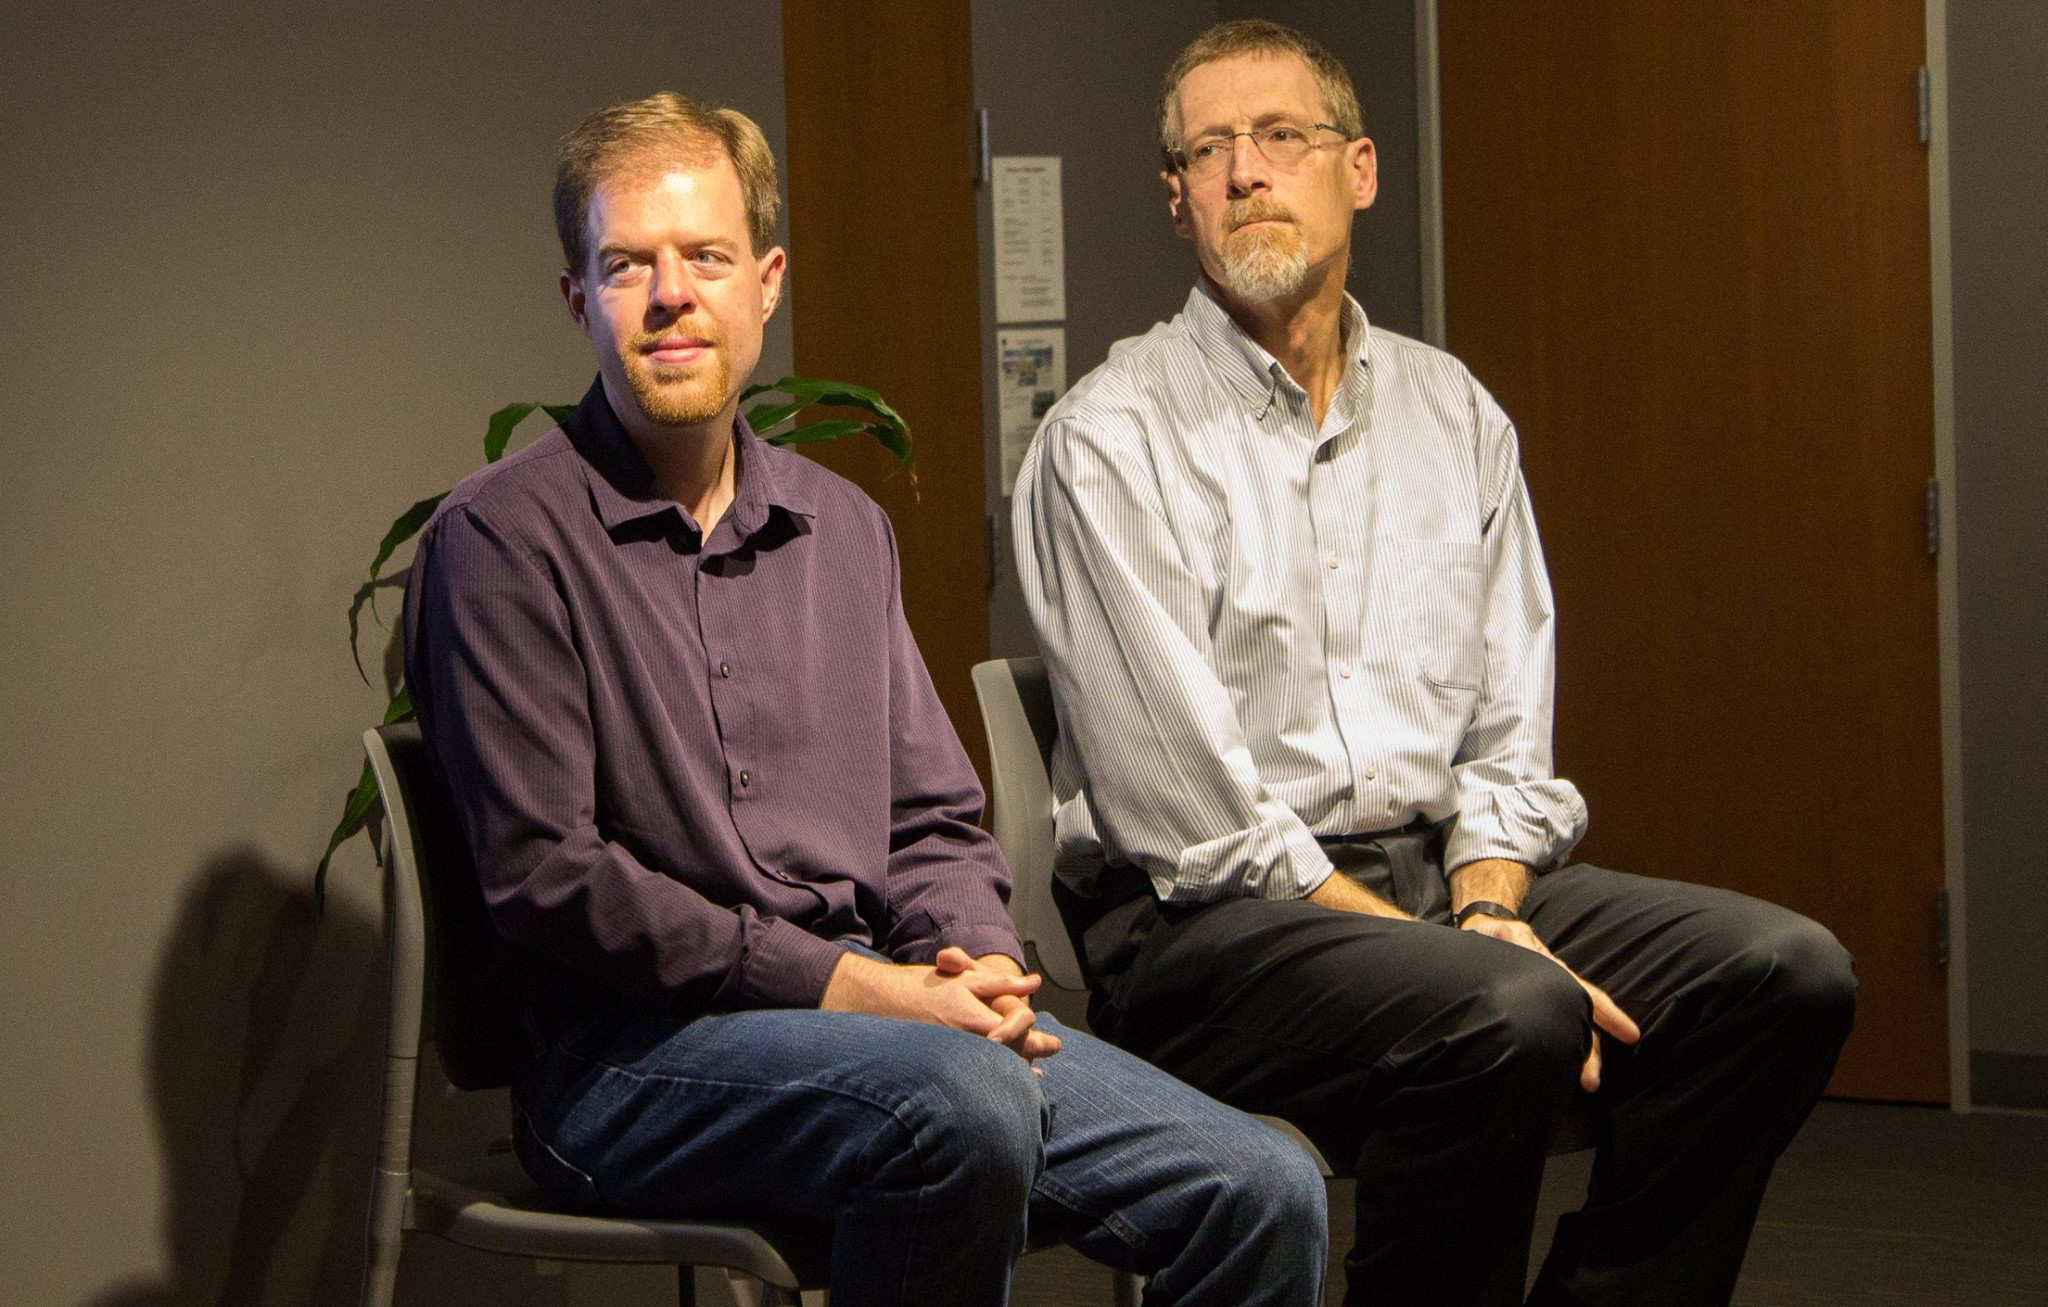 Left to right: Jim Pugh and Chris Benner at Thinking Ahead event on September 13